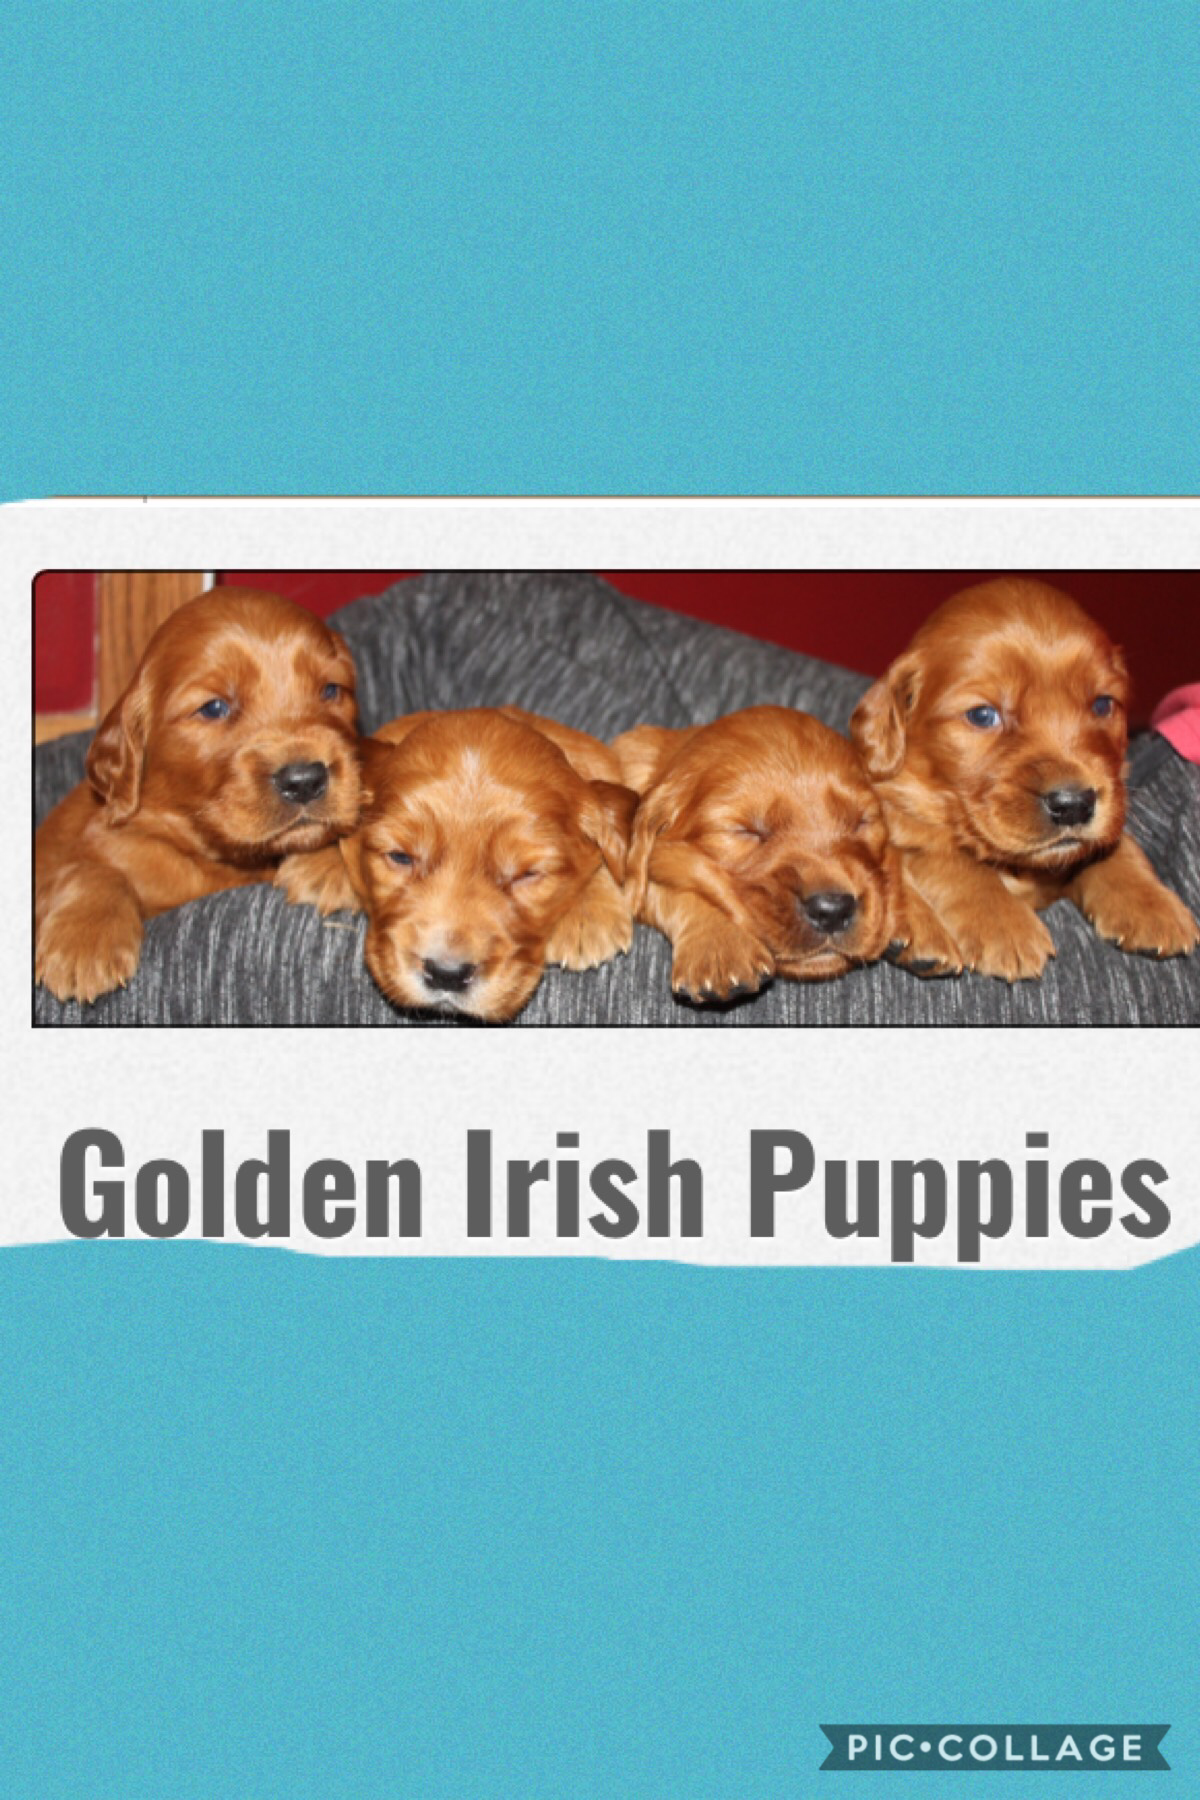 I'm so happy I'm getting one of these puppy's!!!!!